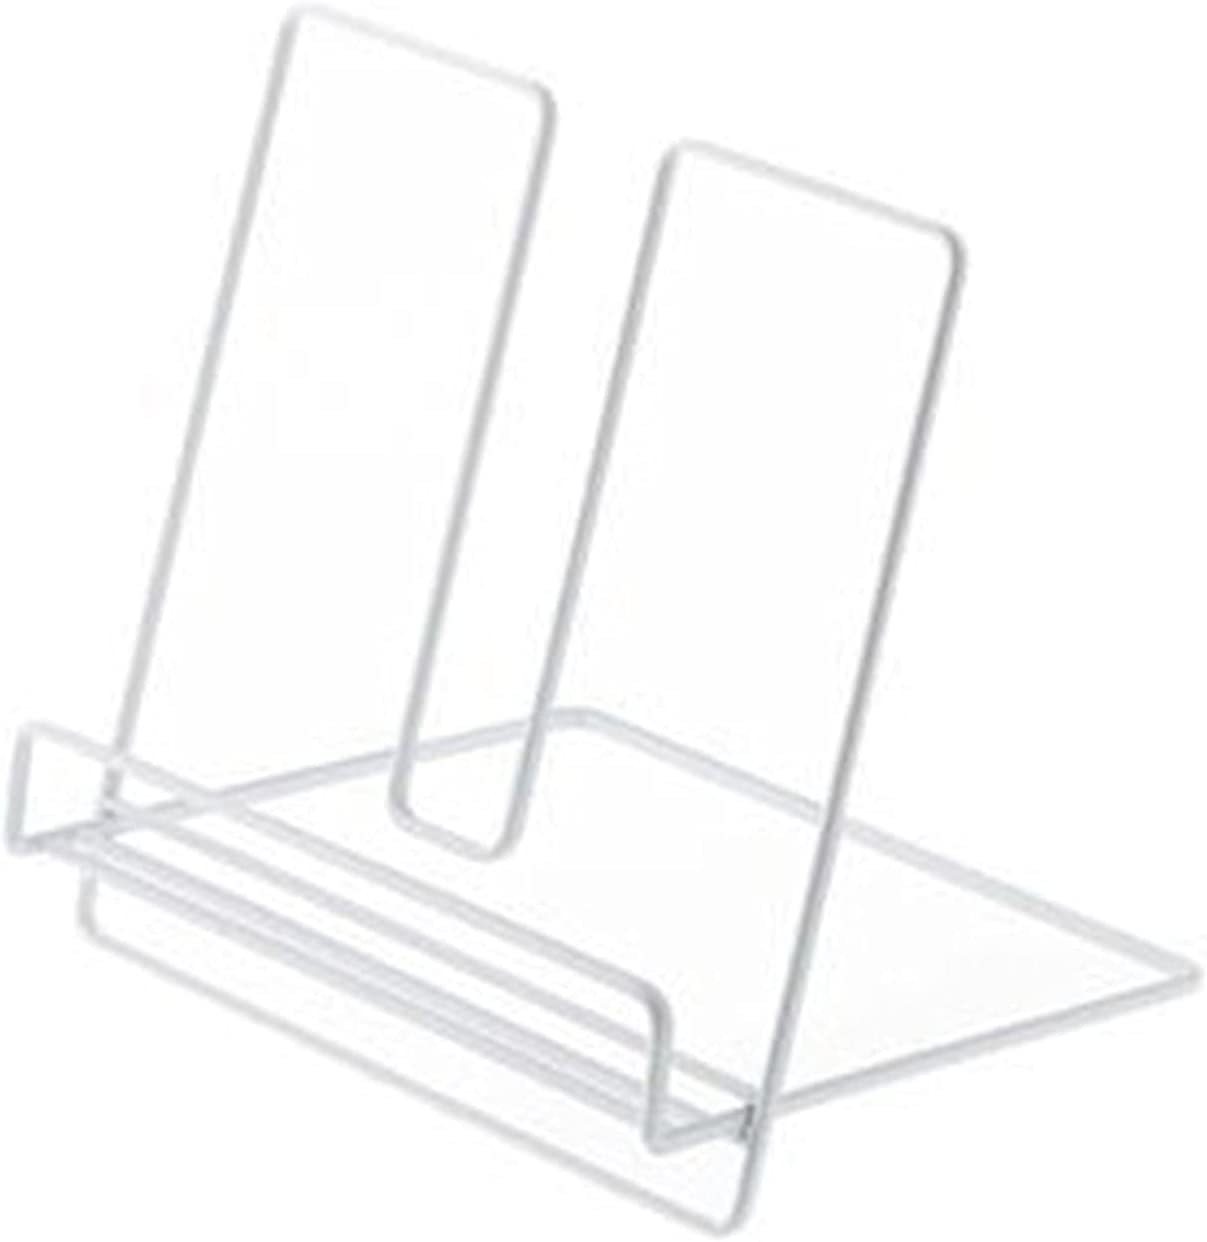 Yinuoday Recipe Book Stand Cookbook Stands Holder for Textbook R